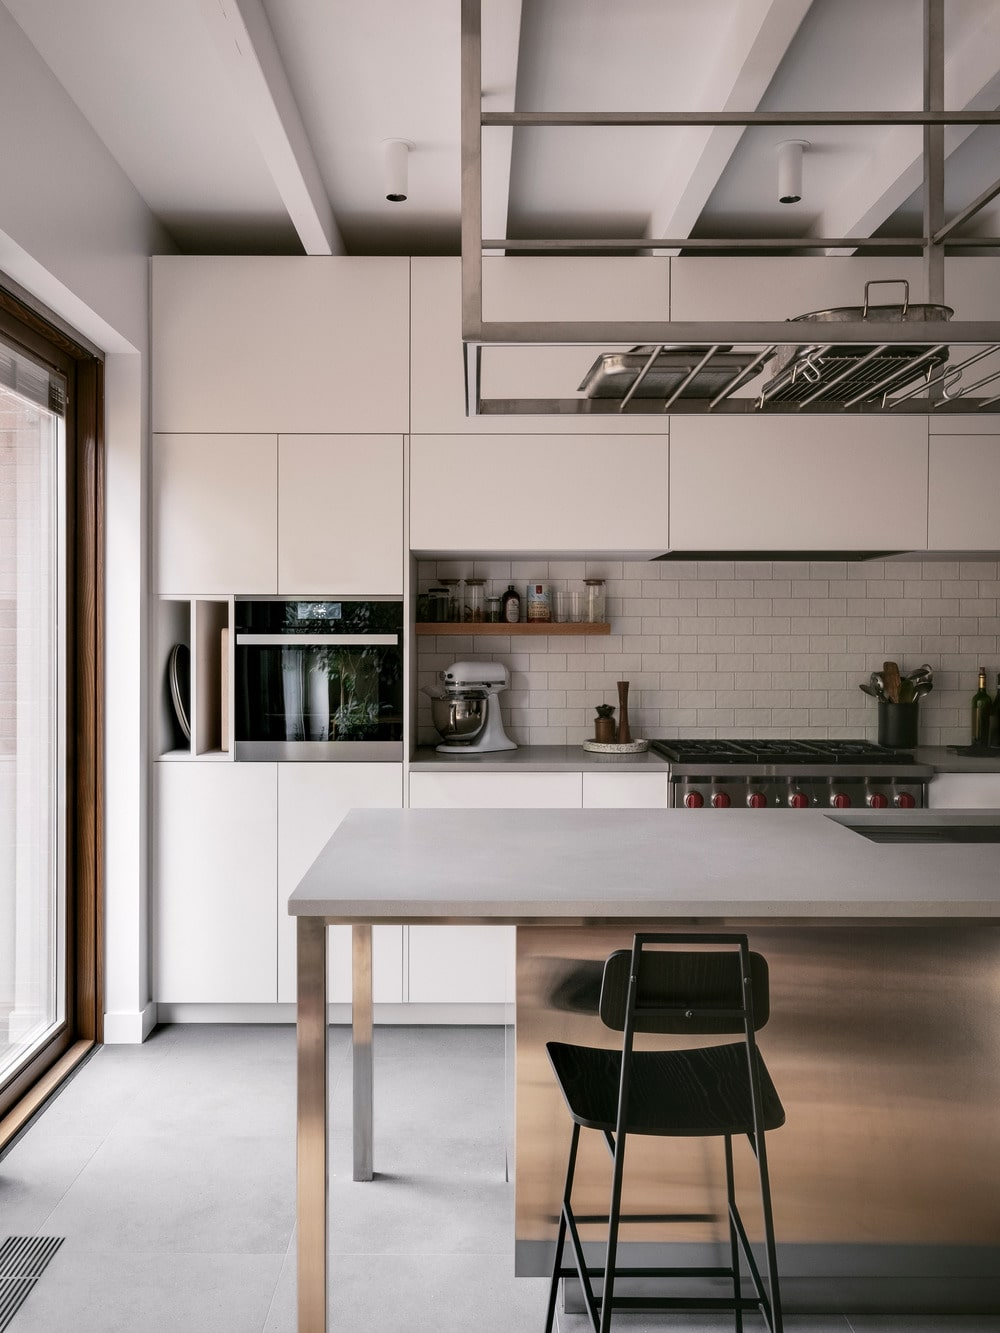 This is a view of the kitchen showcasing the attached modern table at the edge of the island and a view of the modern white cabinetry on the far side.